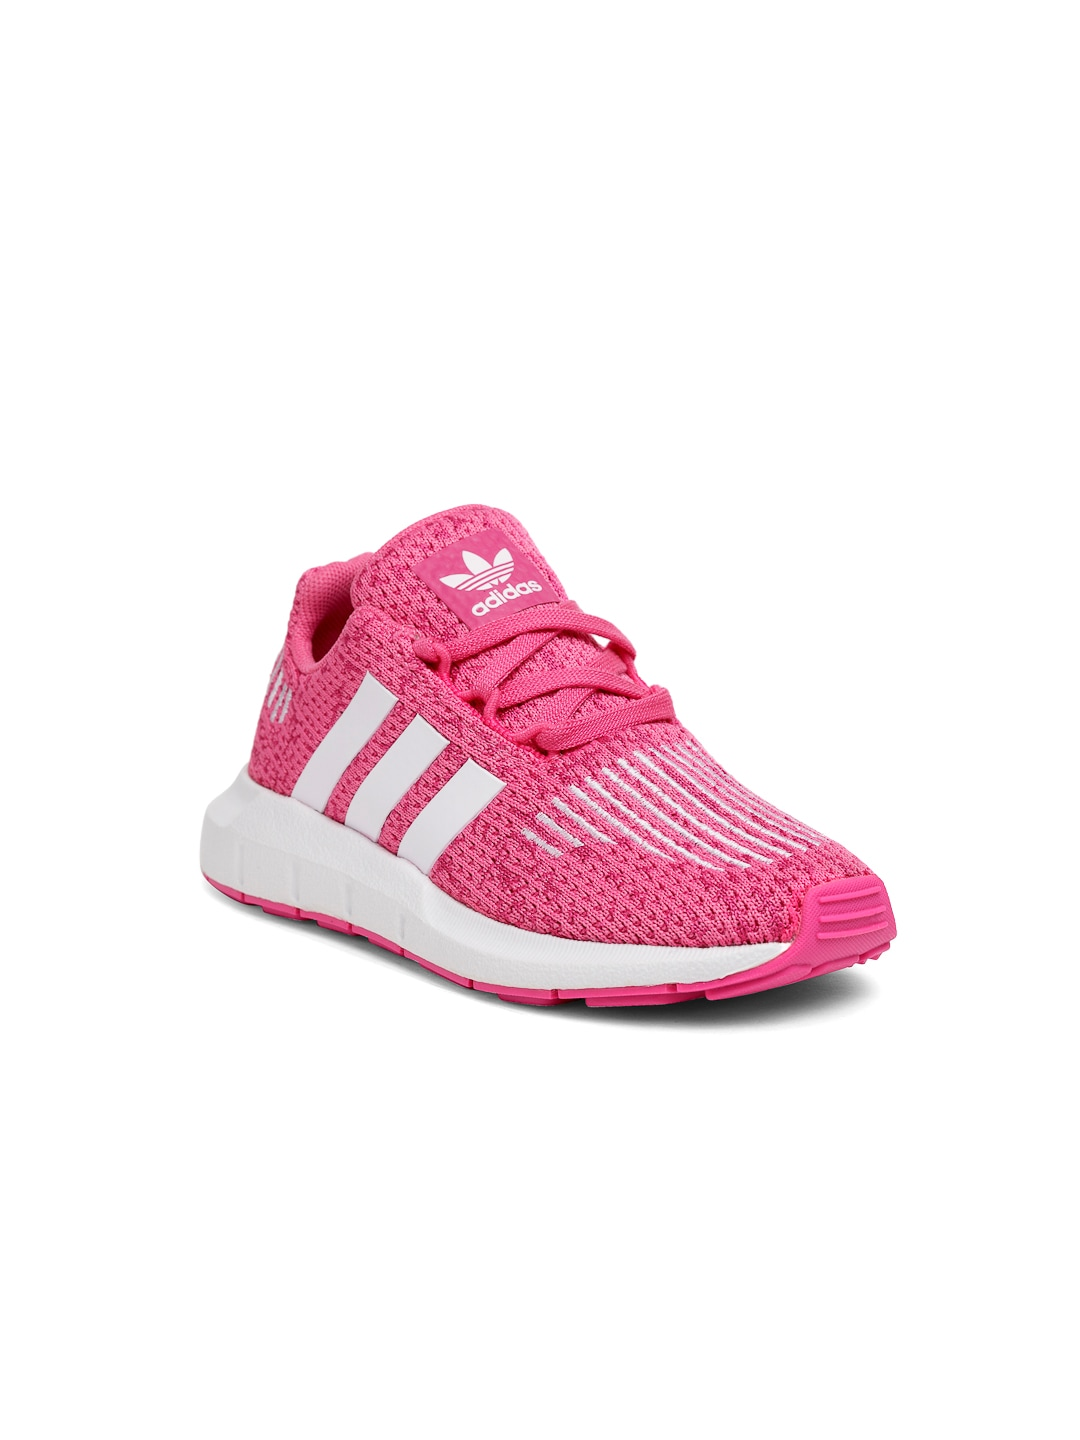 778dc049661cb Adidas Girls Casual Shoes - Buy Adidas Girls Casual Shoes online in India